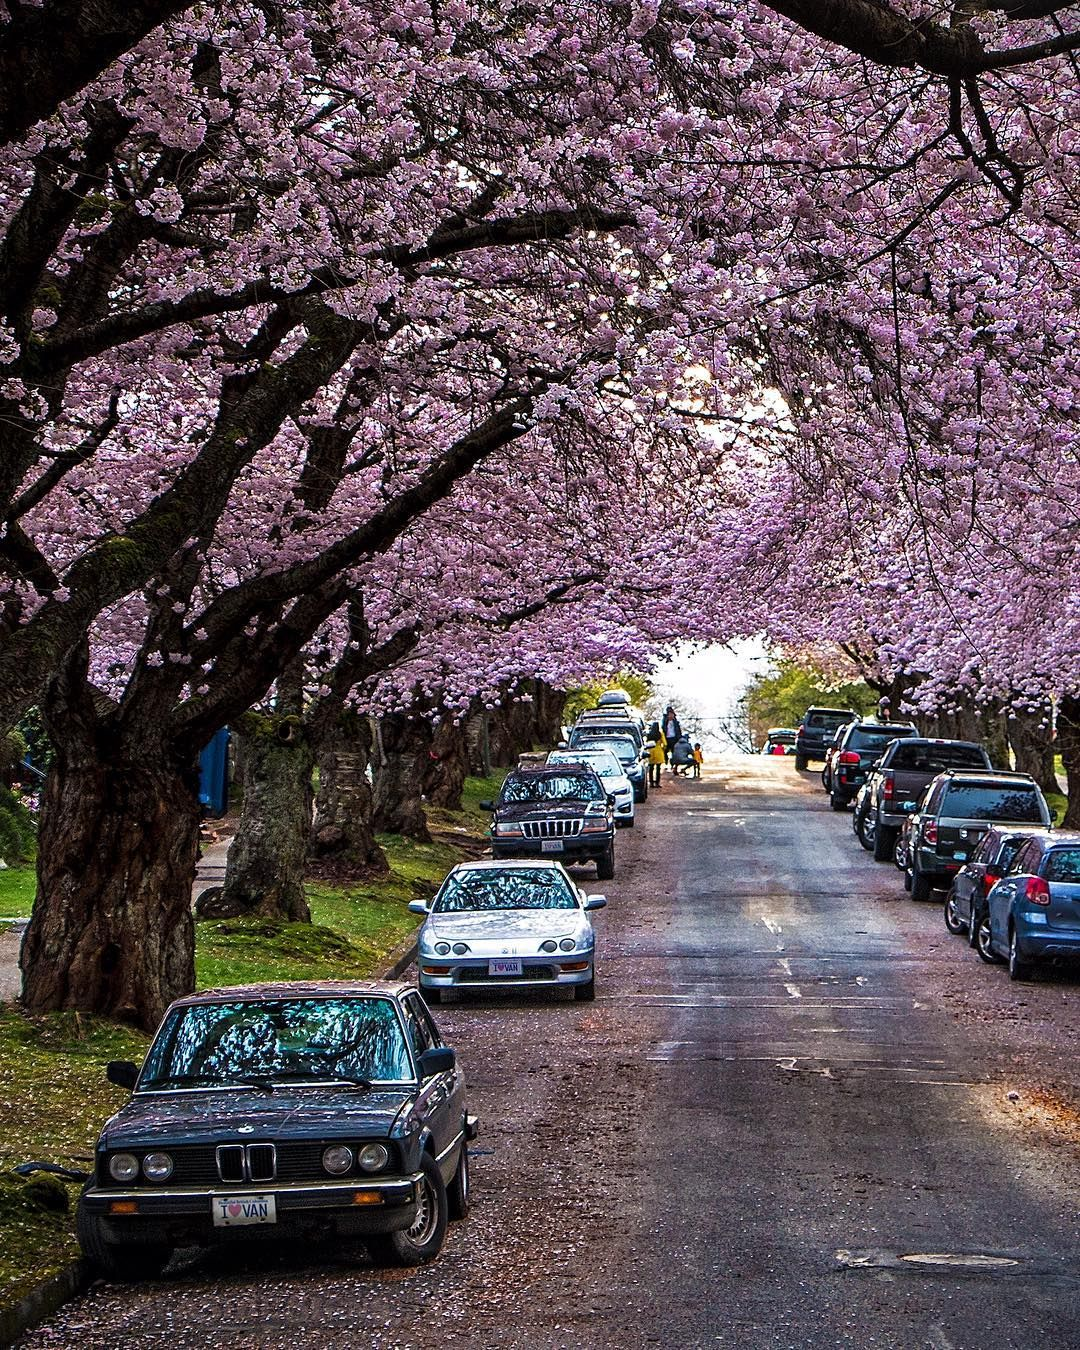 Canopink Blossoms Form A Pink Canopy Over A Street In The Hastings Sunrise Neighbourhood The Smell Of Flowers Fill The Vancouver Blossom Trees Cherry Tree